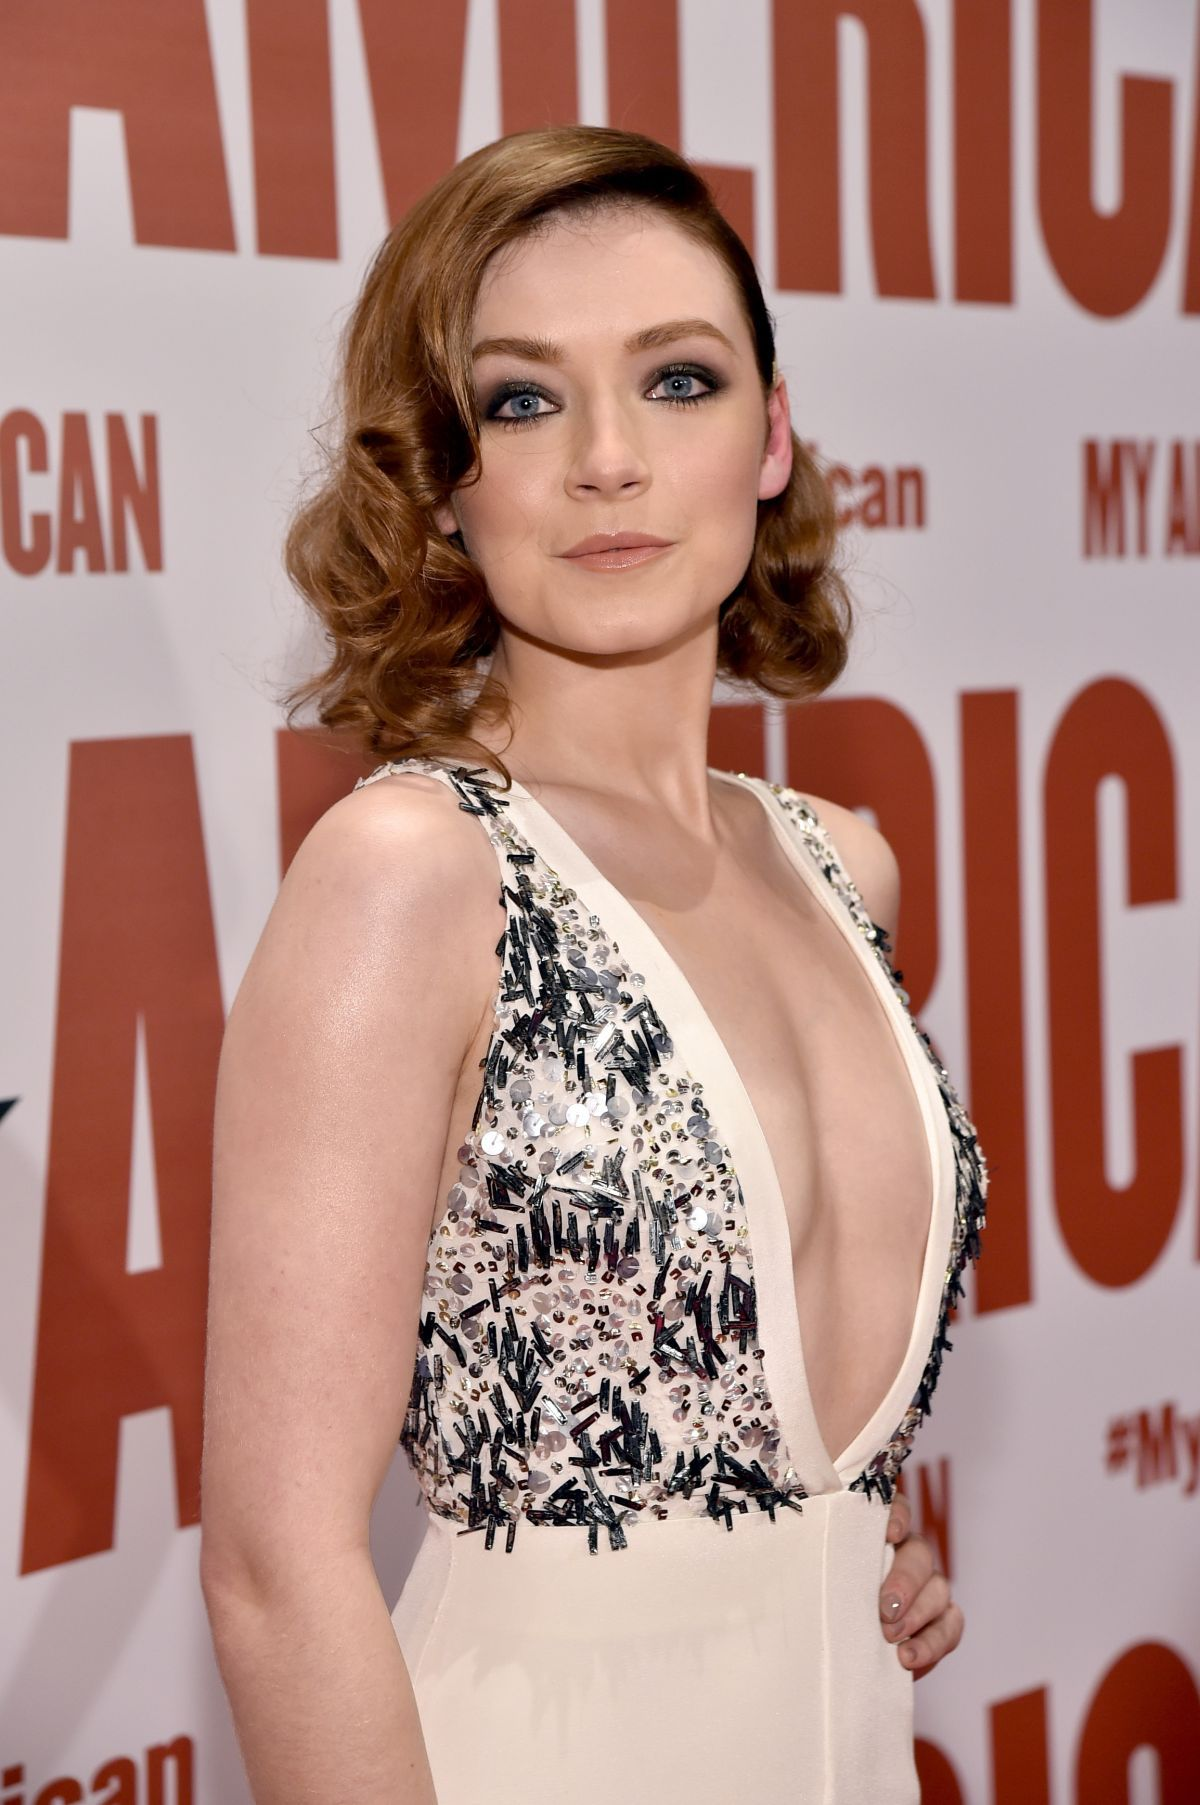 Pics Sarah Bolger nudes (78 foto and video), Pussy, Hot, Feet, in bikini 2020